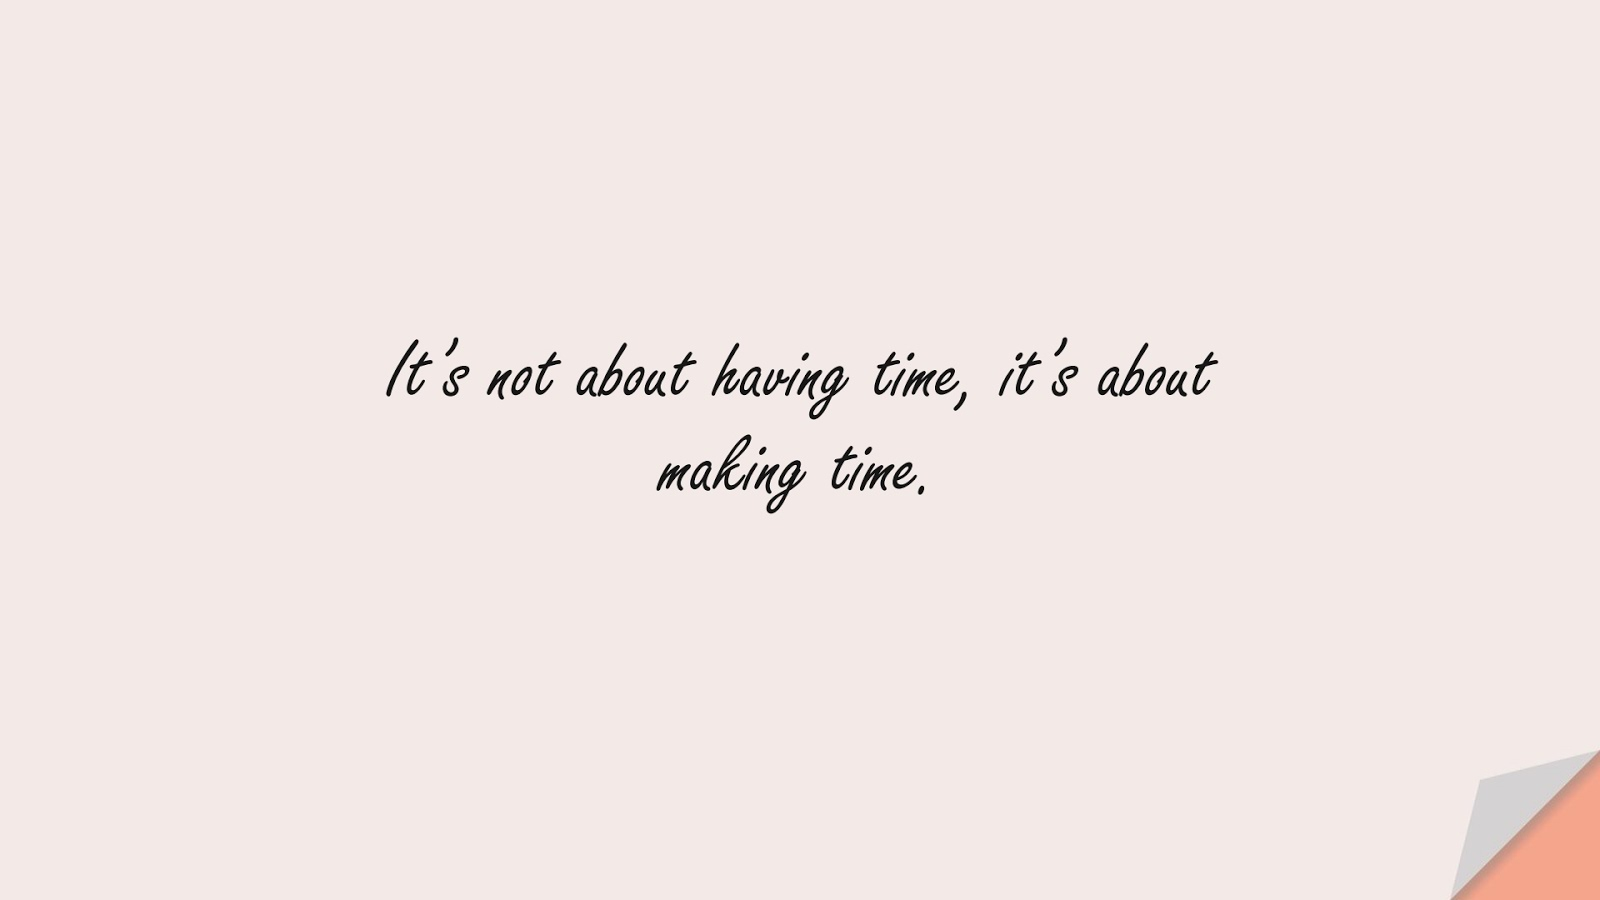 It's not about having time, it's about making time.FALSE